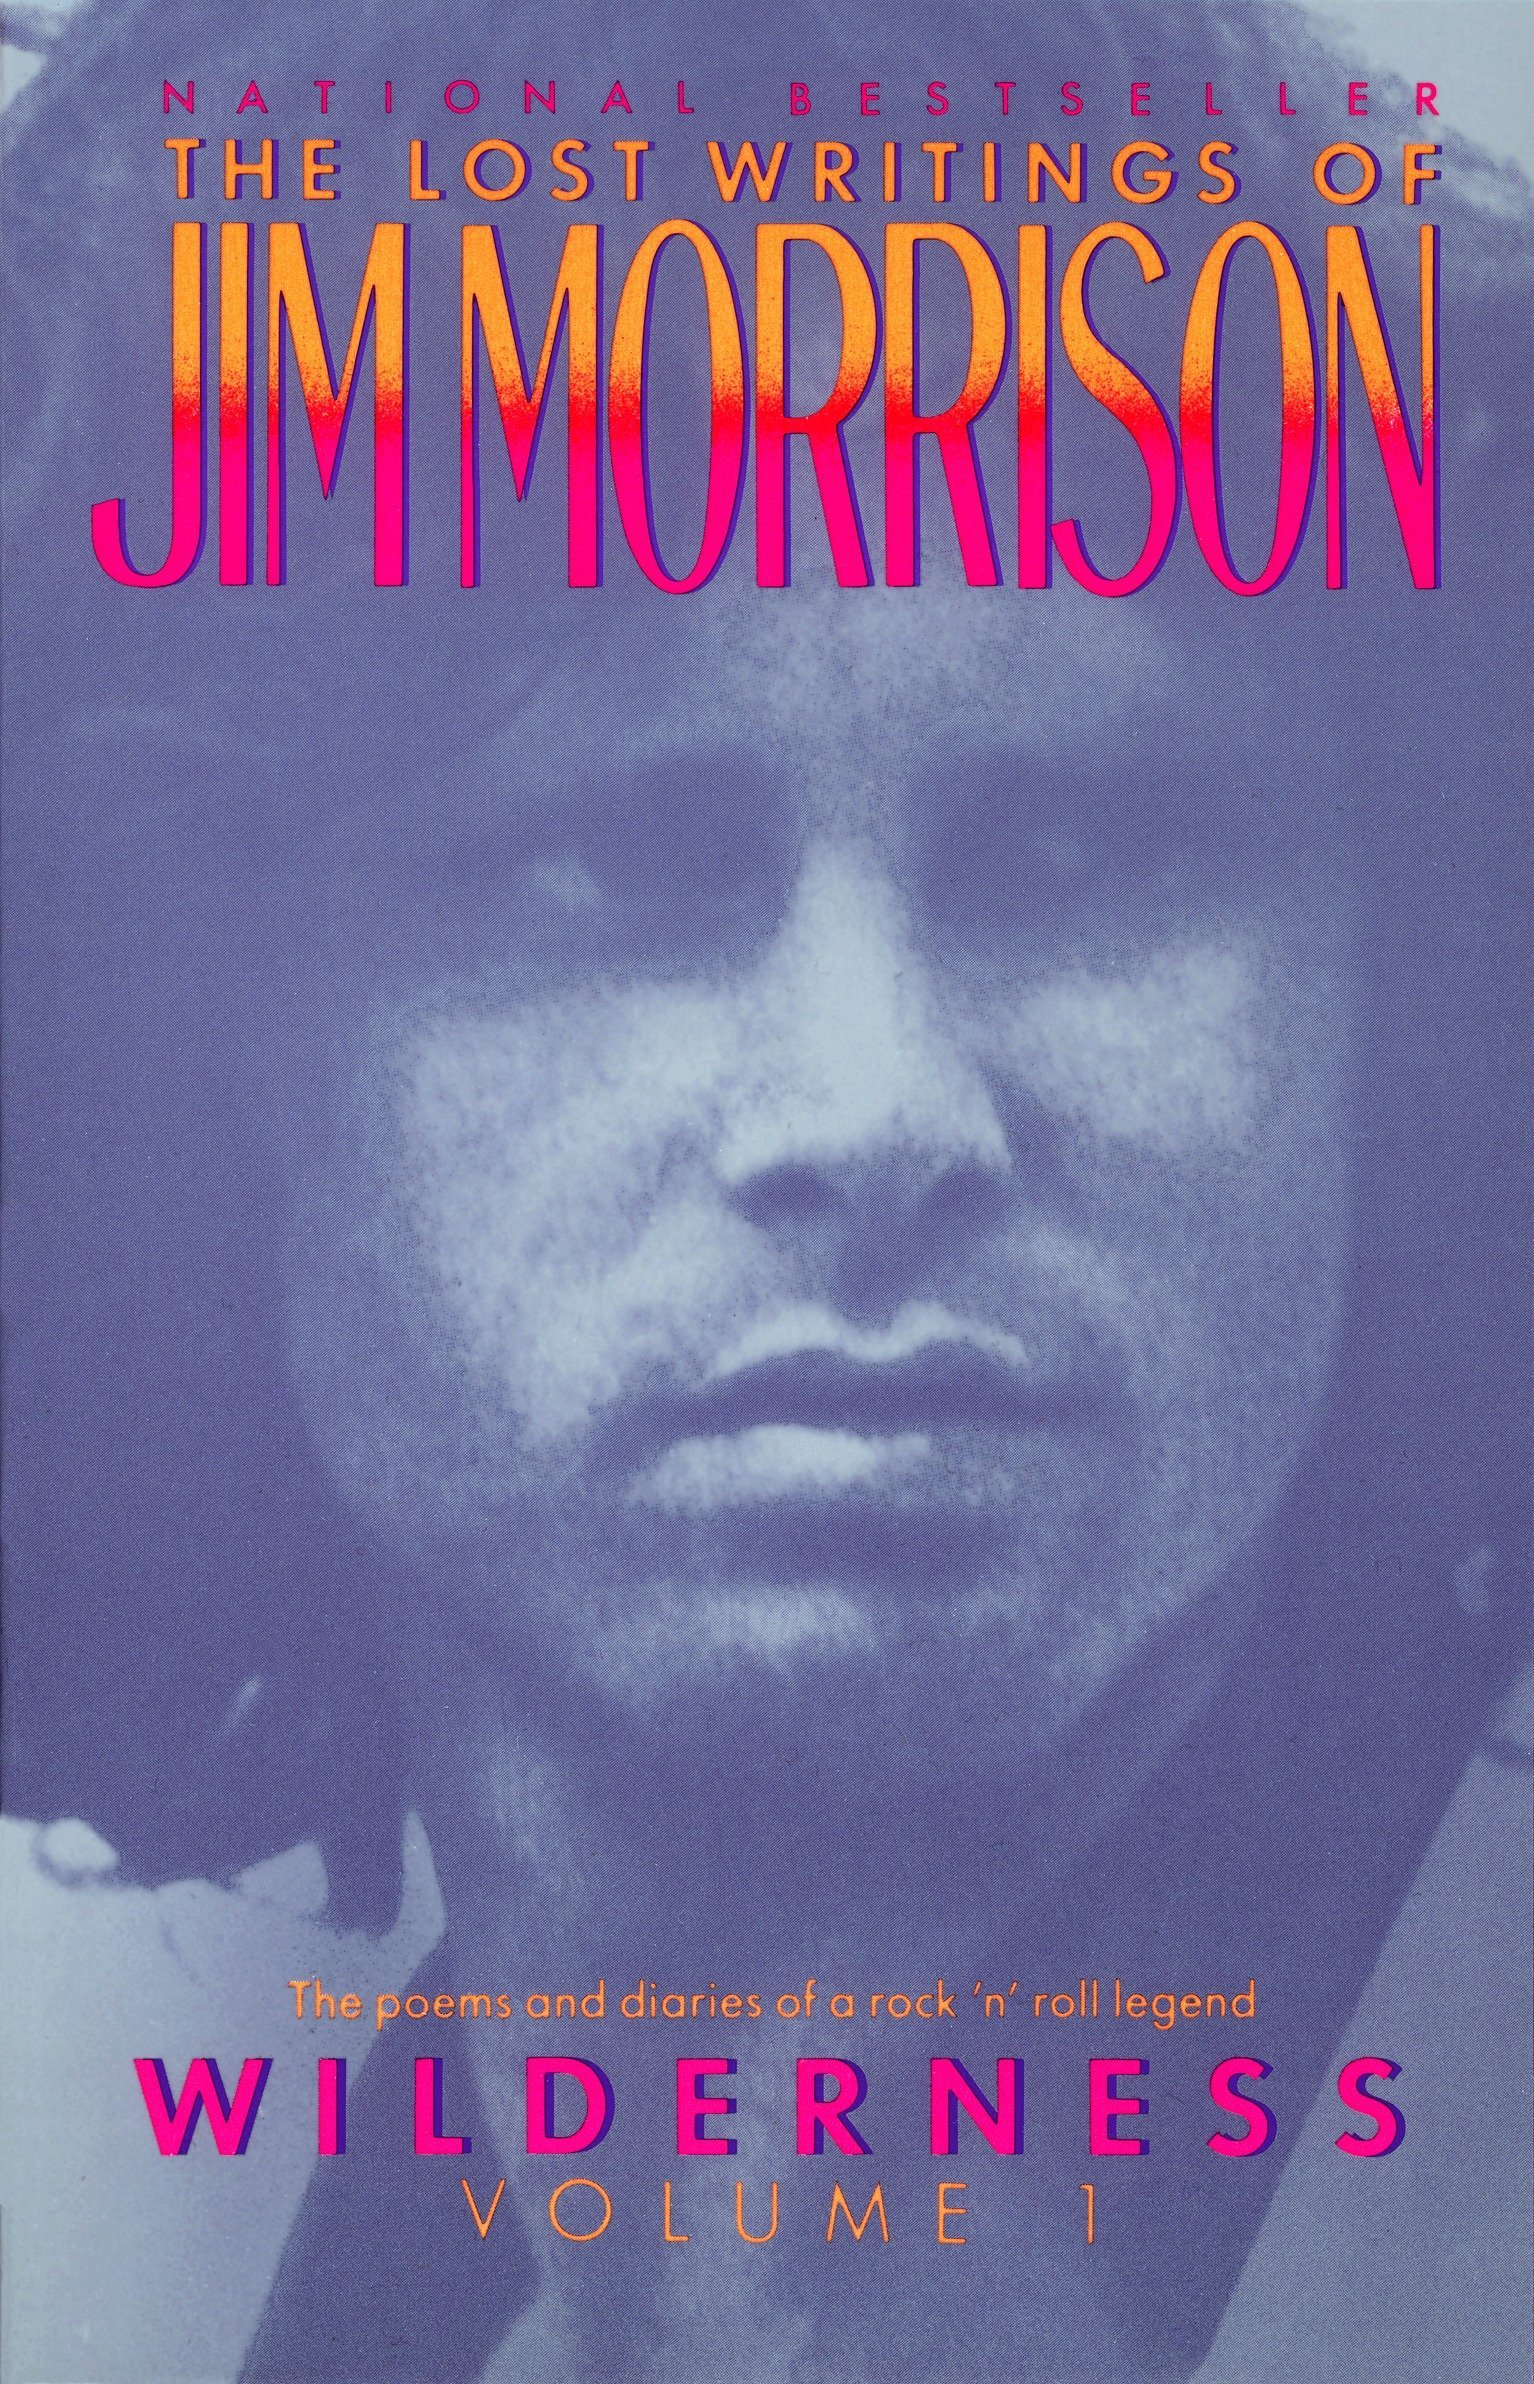 The Lost Writings of Jim Morrison, Vol. 1: Wilderness, Courson, Columbus